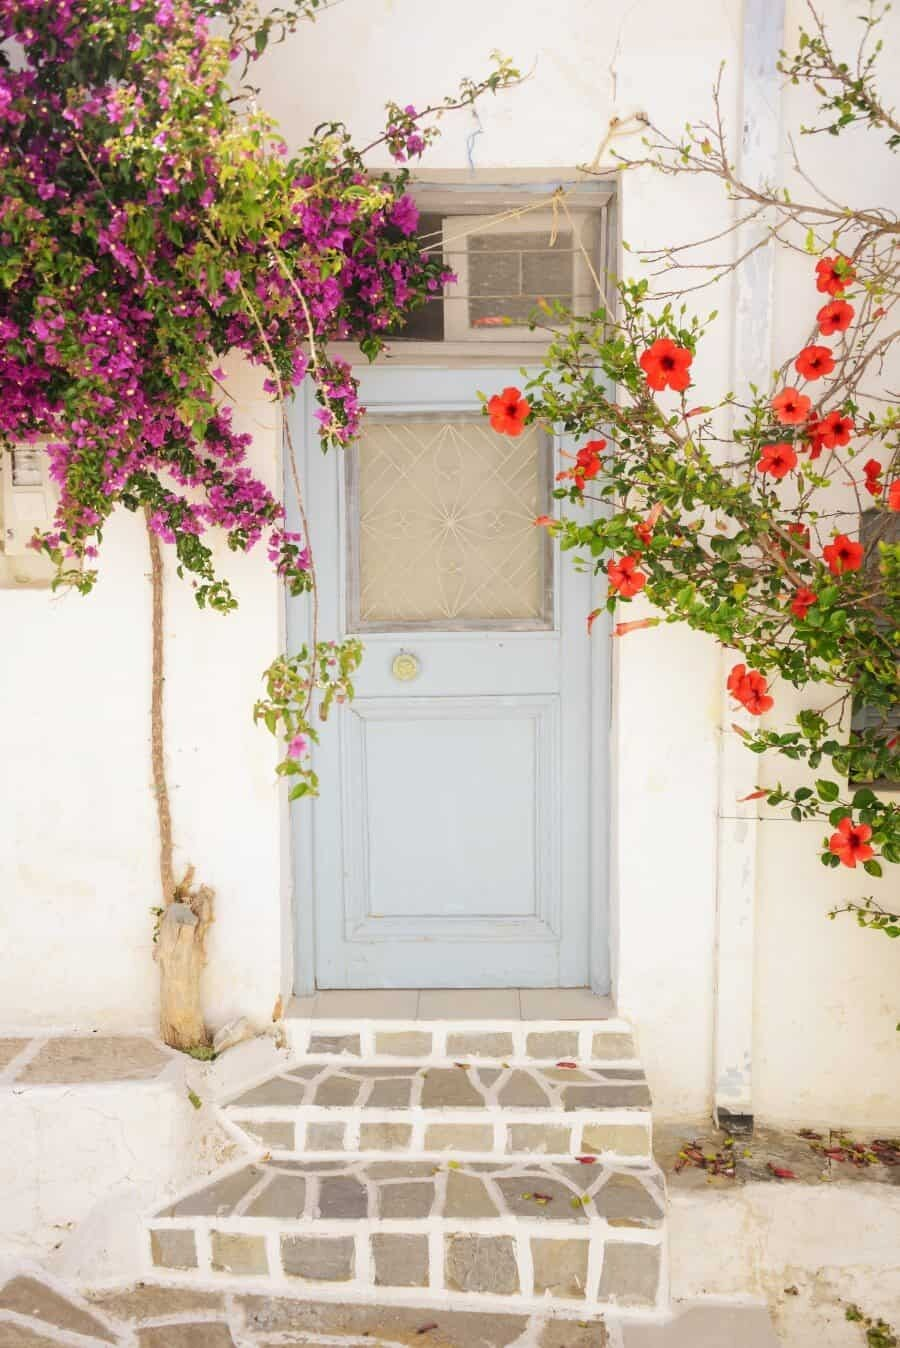 paros-island-greek-islands-by-the-wandering-lens-10